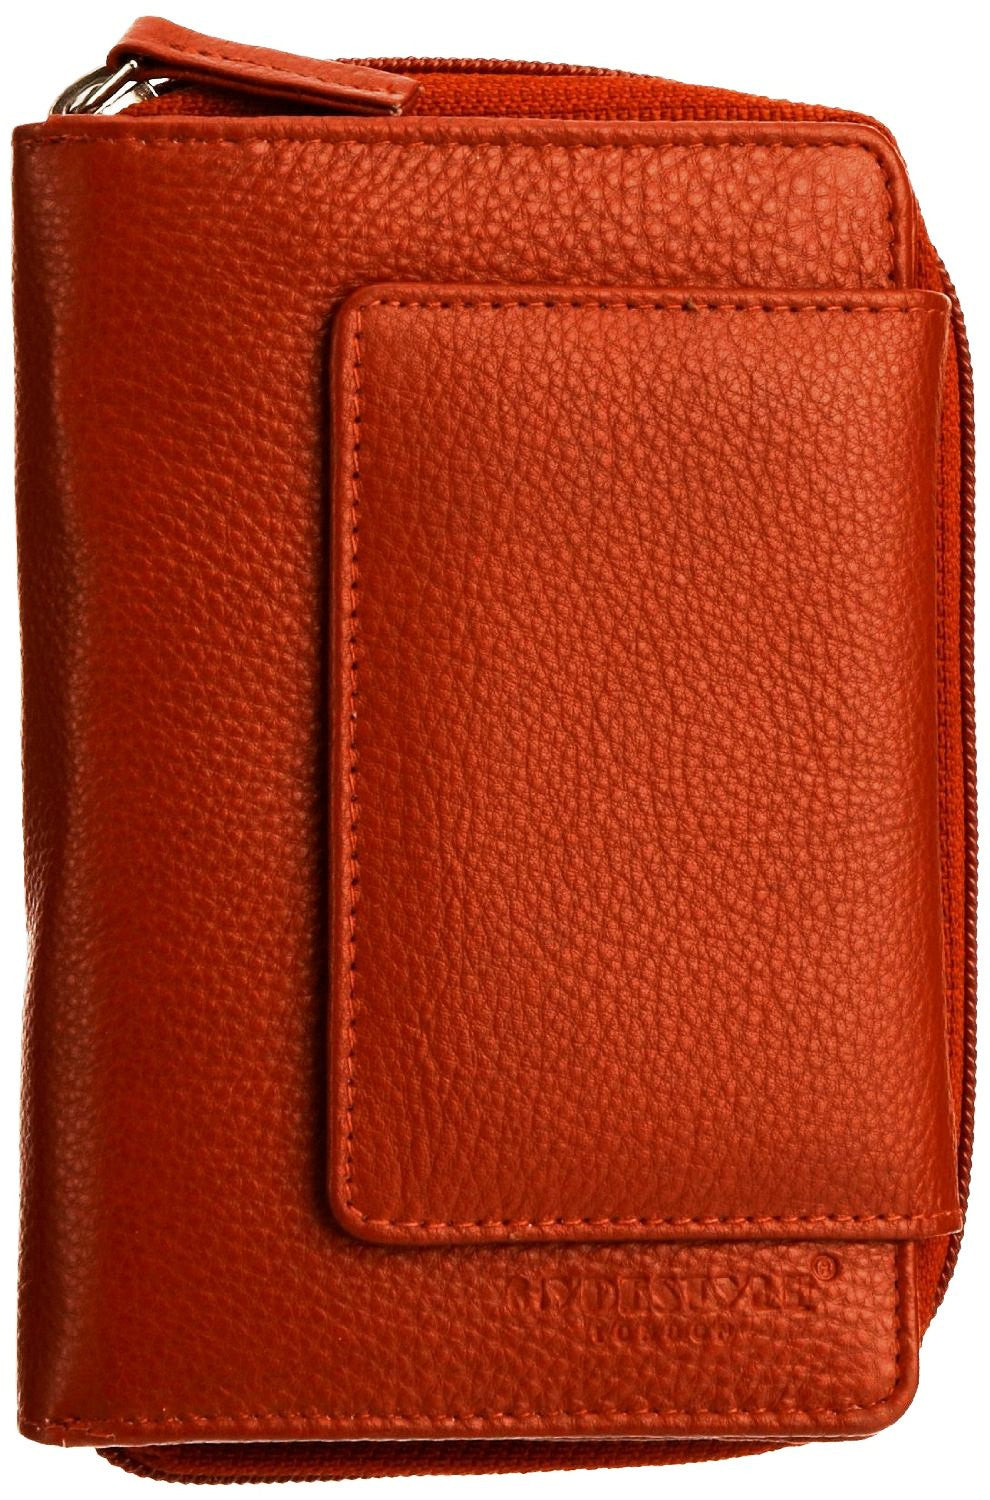 Pratico - women leather flap wallet #LW02 Red